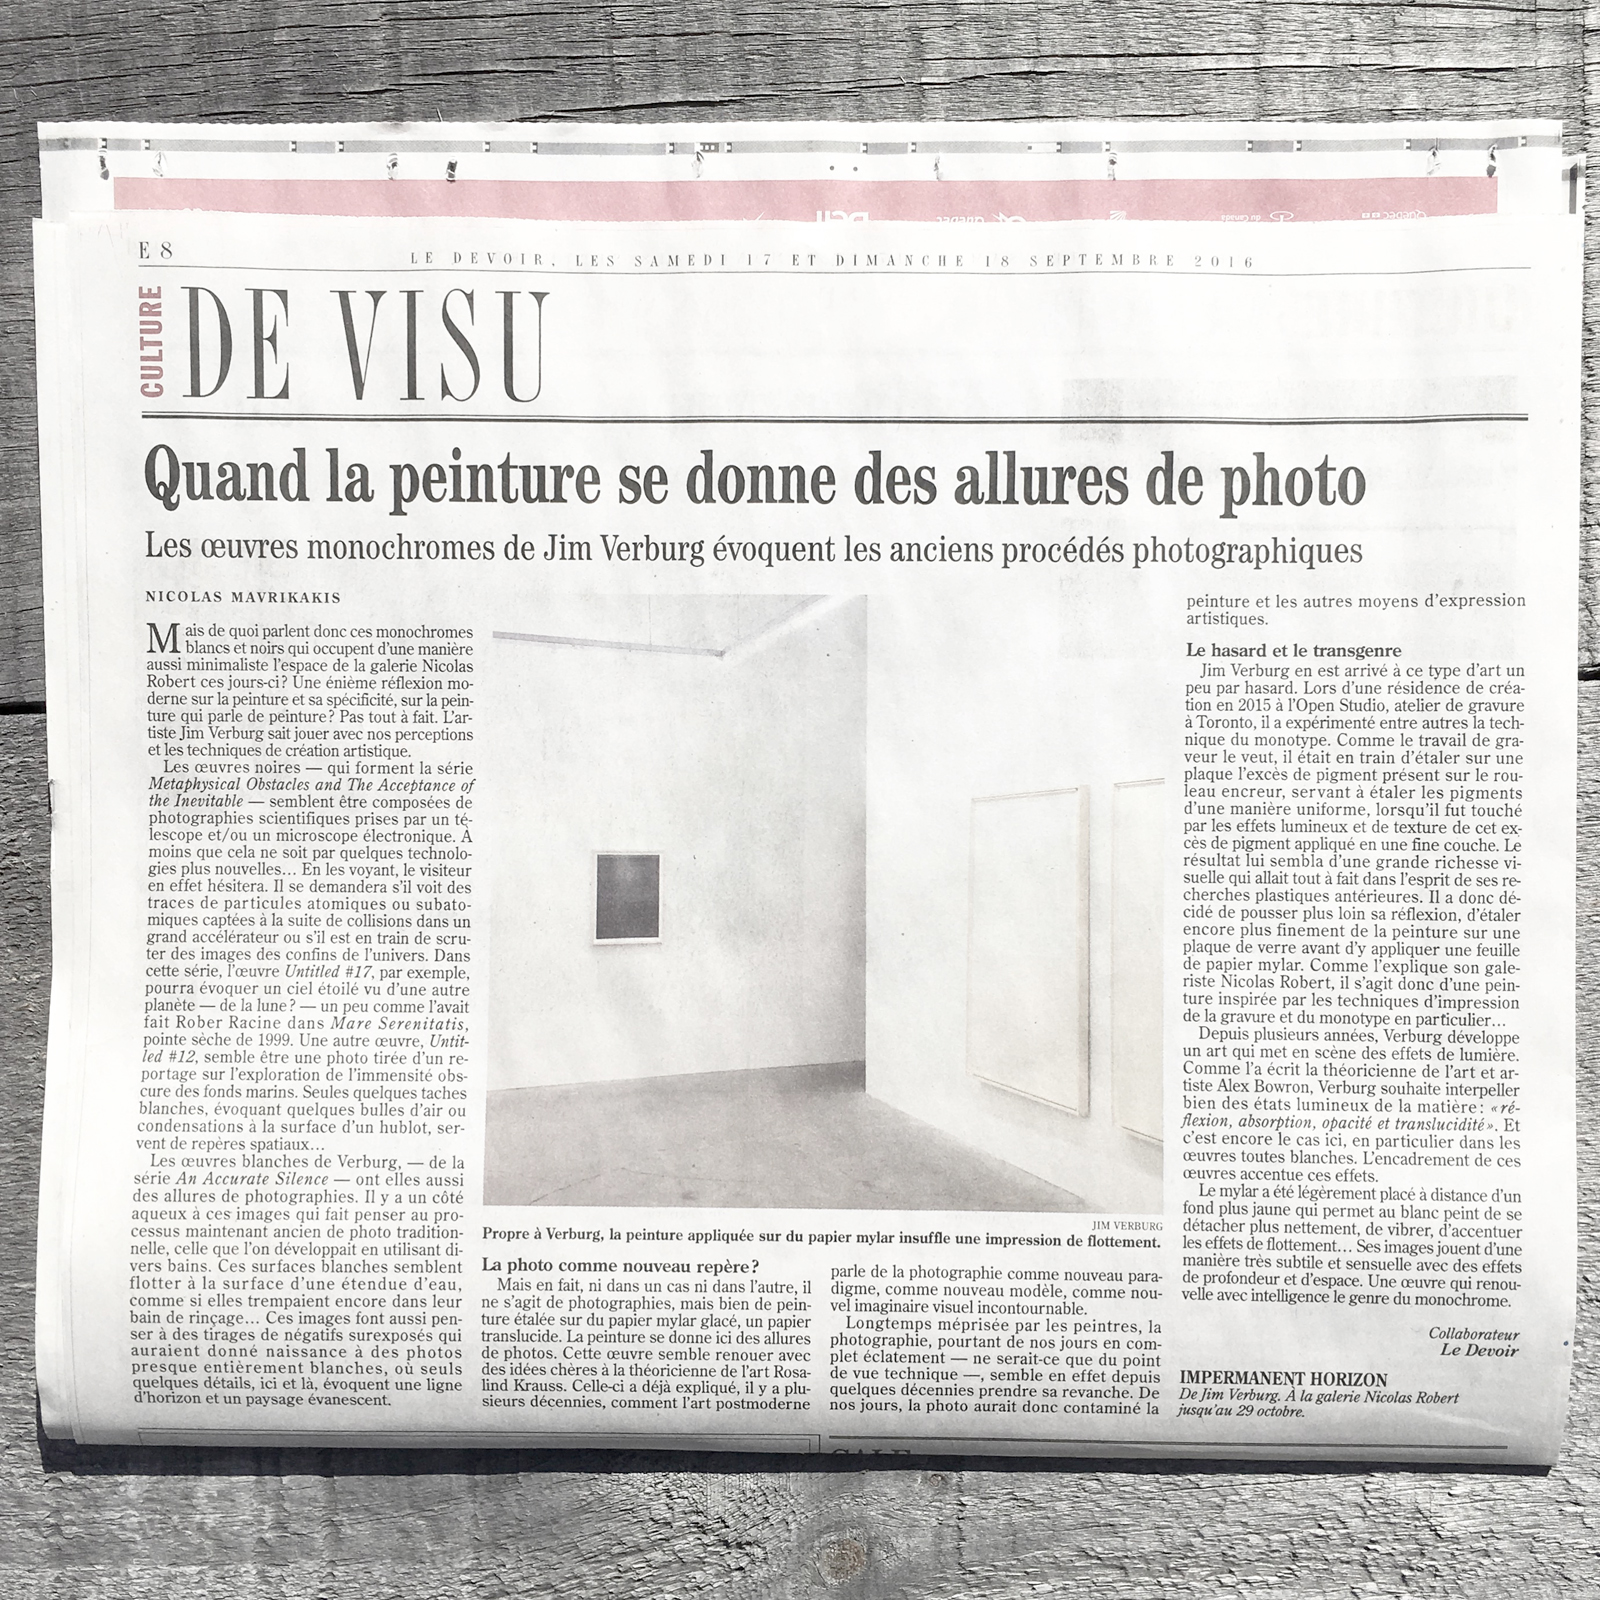 Review in Le Devoir, September 17, 2016:  Nicolas Mavrikakis, Painting in the guise of photography: Jim Verburg's monochrome works evoke old photographic processes,